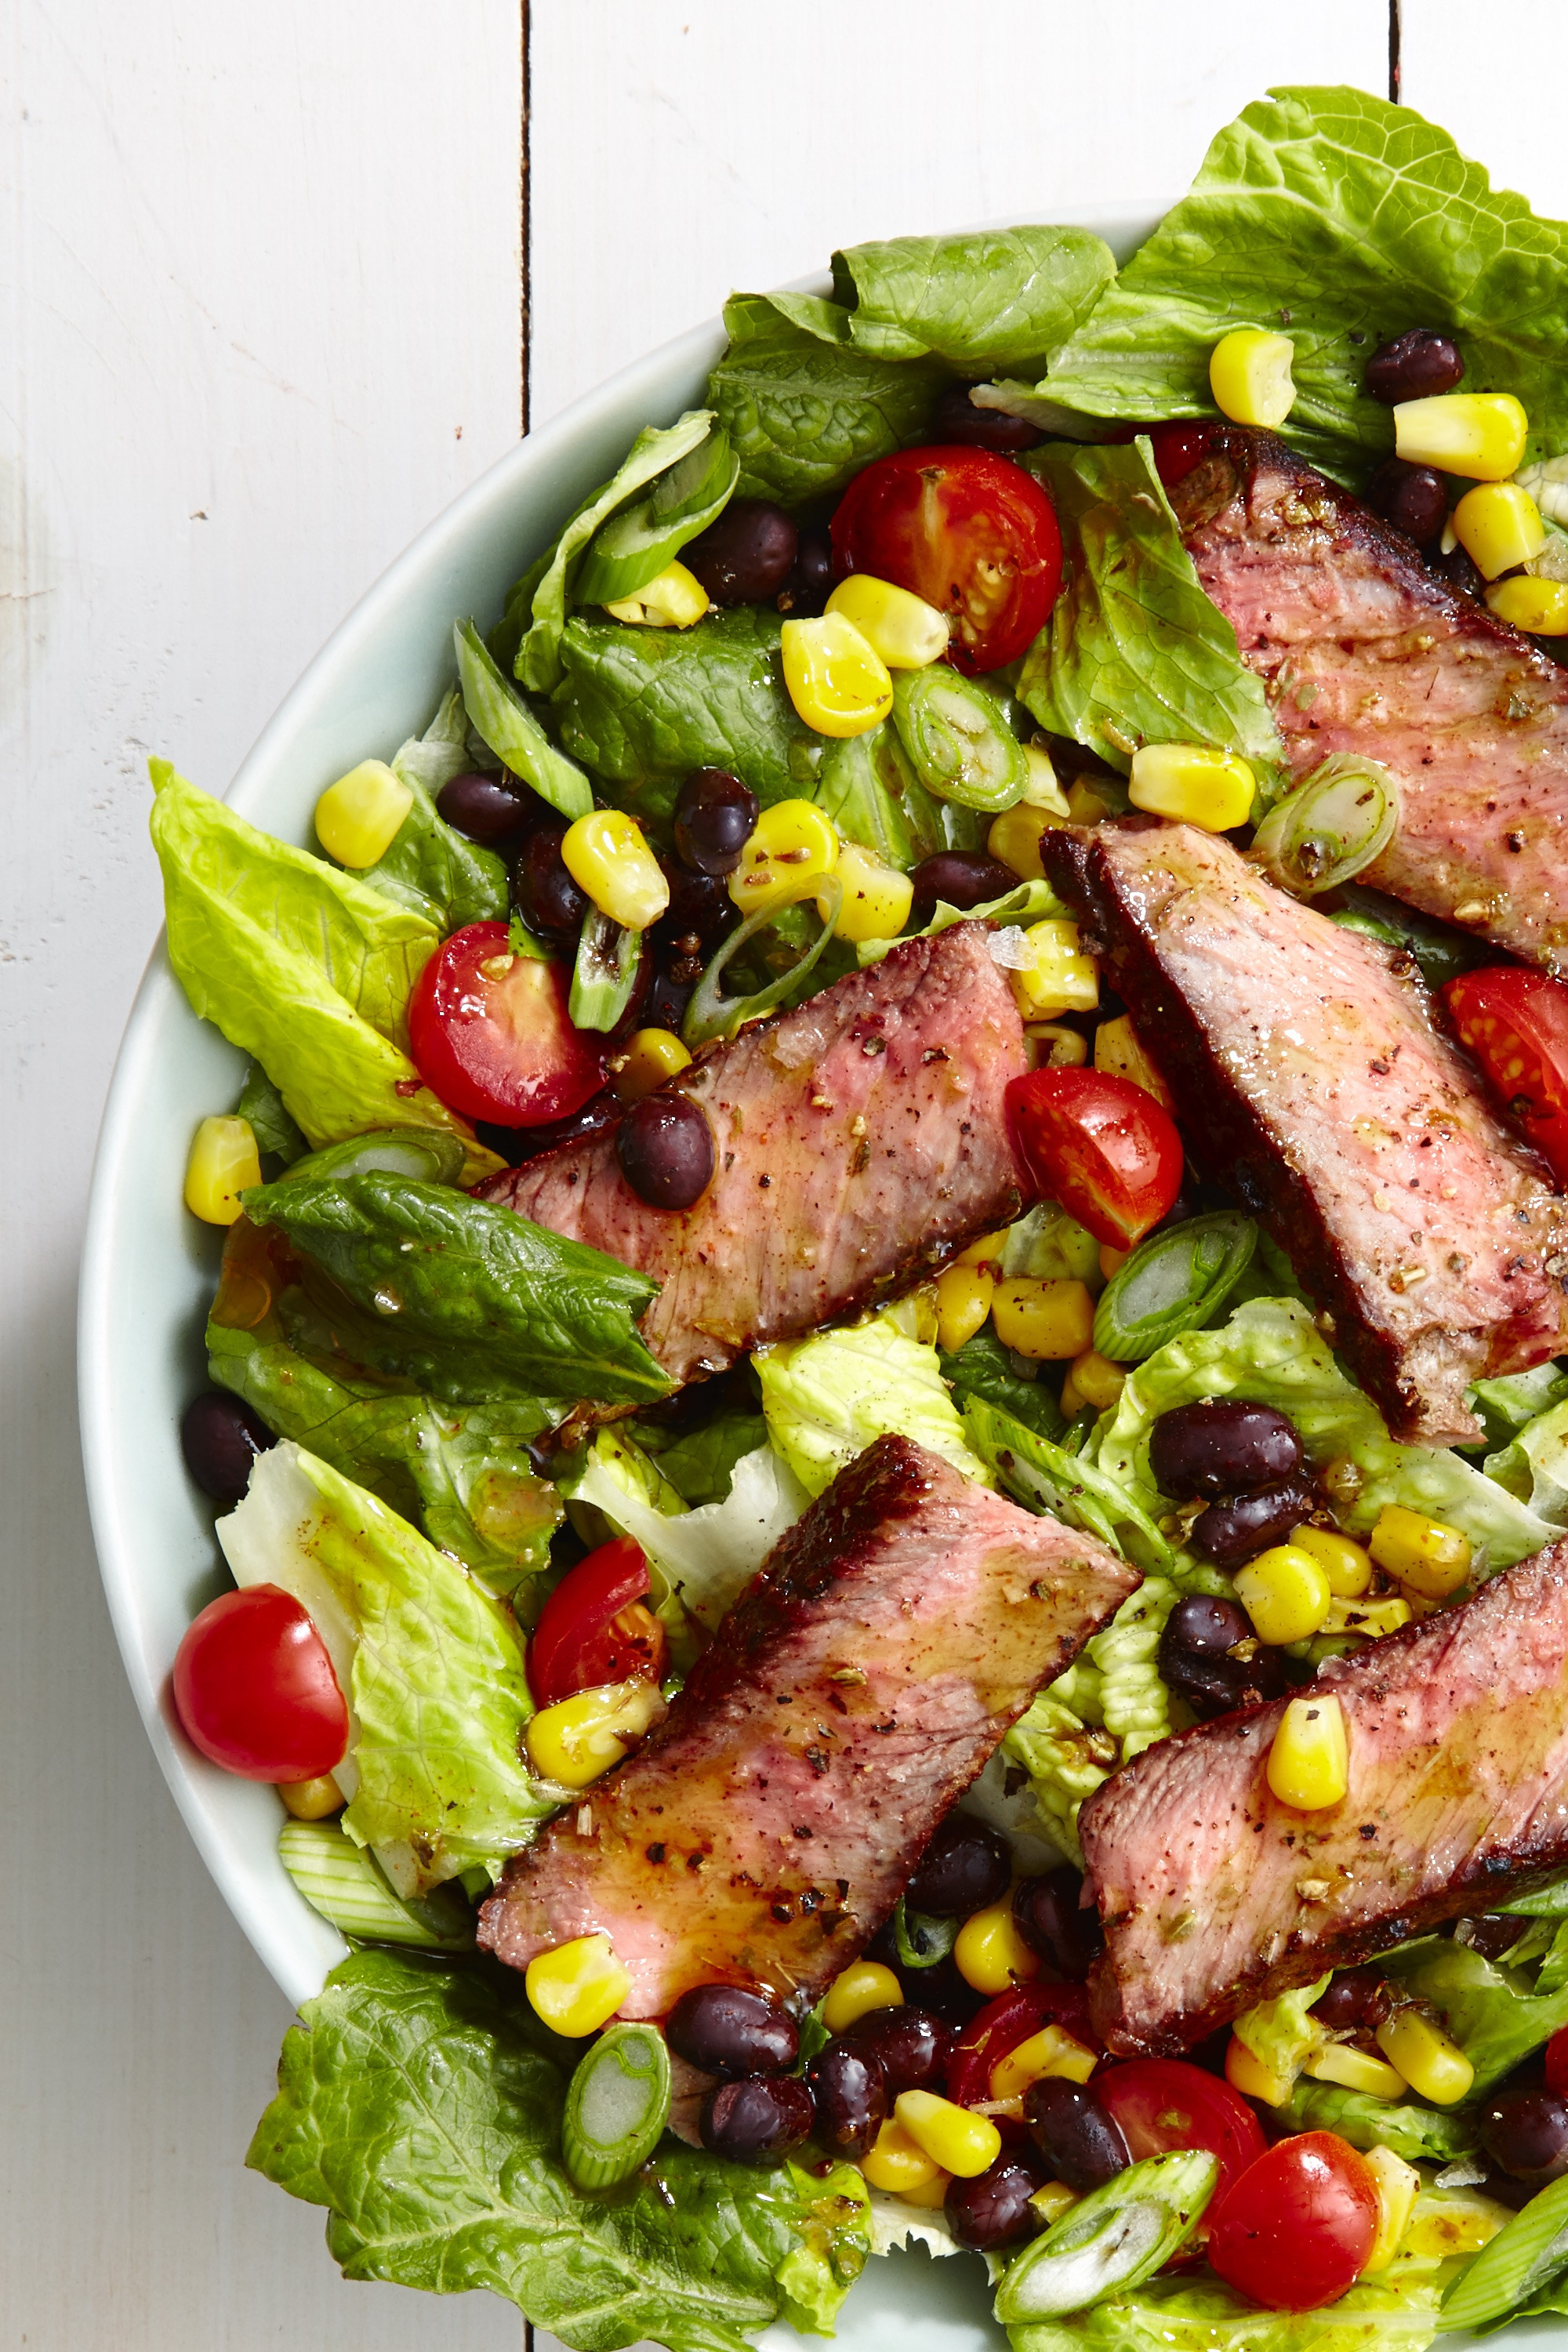 Healthy Dinner Salads  35 Healthy Dinner Salad Recipes Best Ideas for Healthy